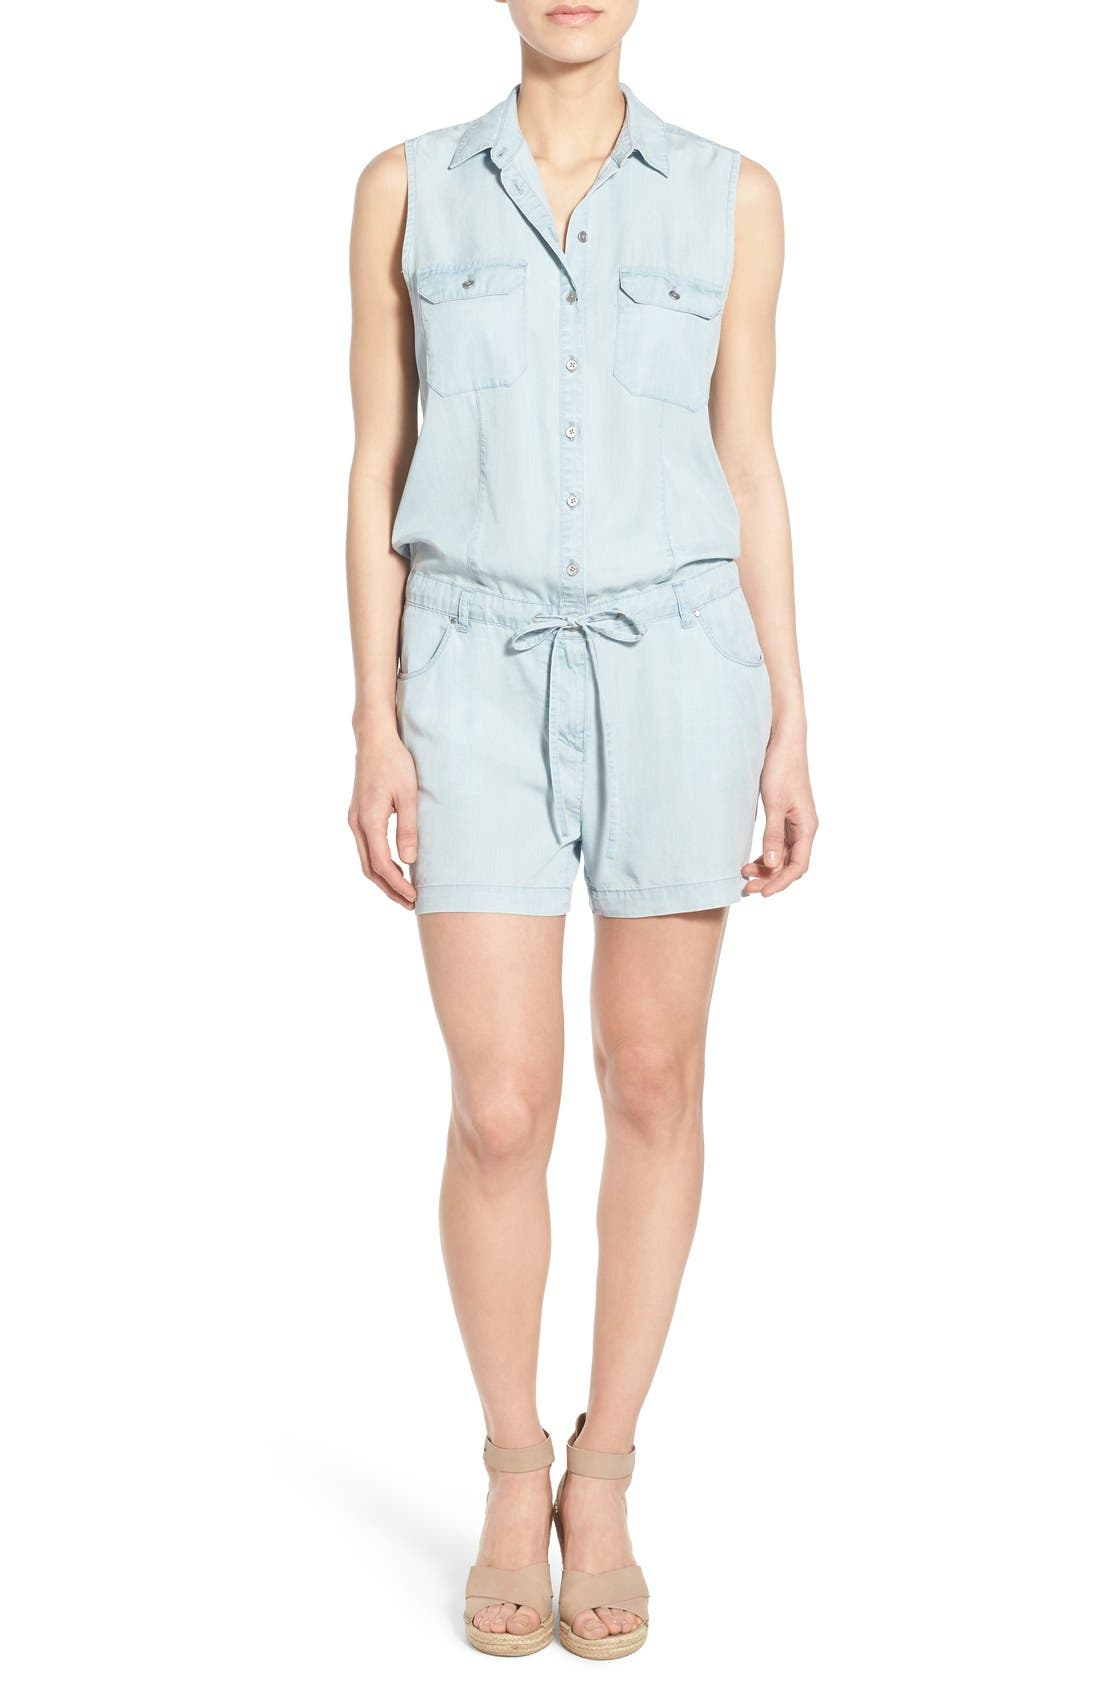 Alternate Image 1 Selected - KUT from the Kloth 'Valentina' Denim Romper